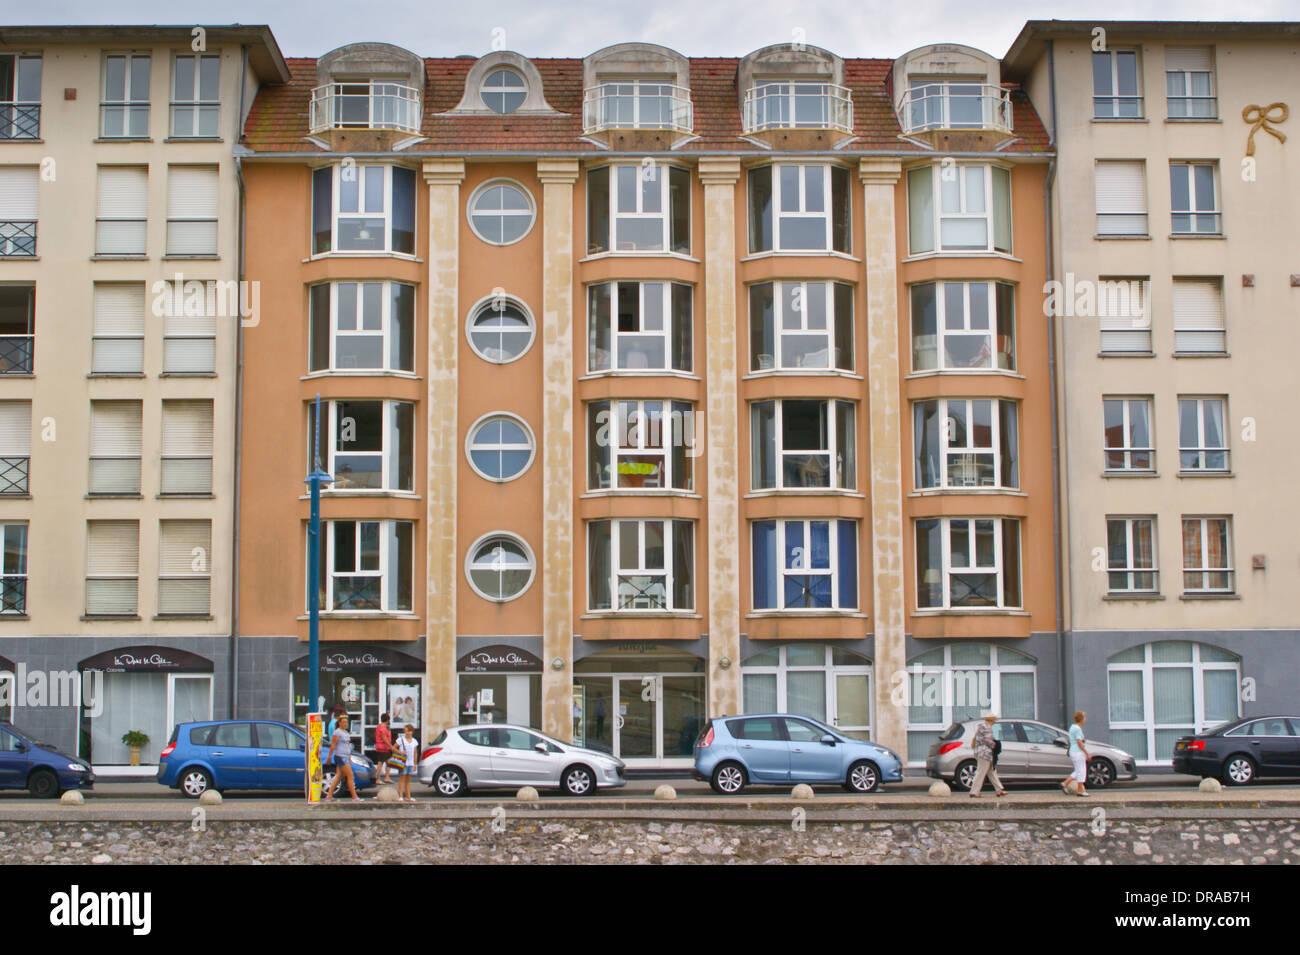 Hotels Wimereux At Wimereux Stock Photos And At Wimereux Stock Images Alamy